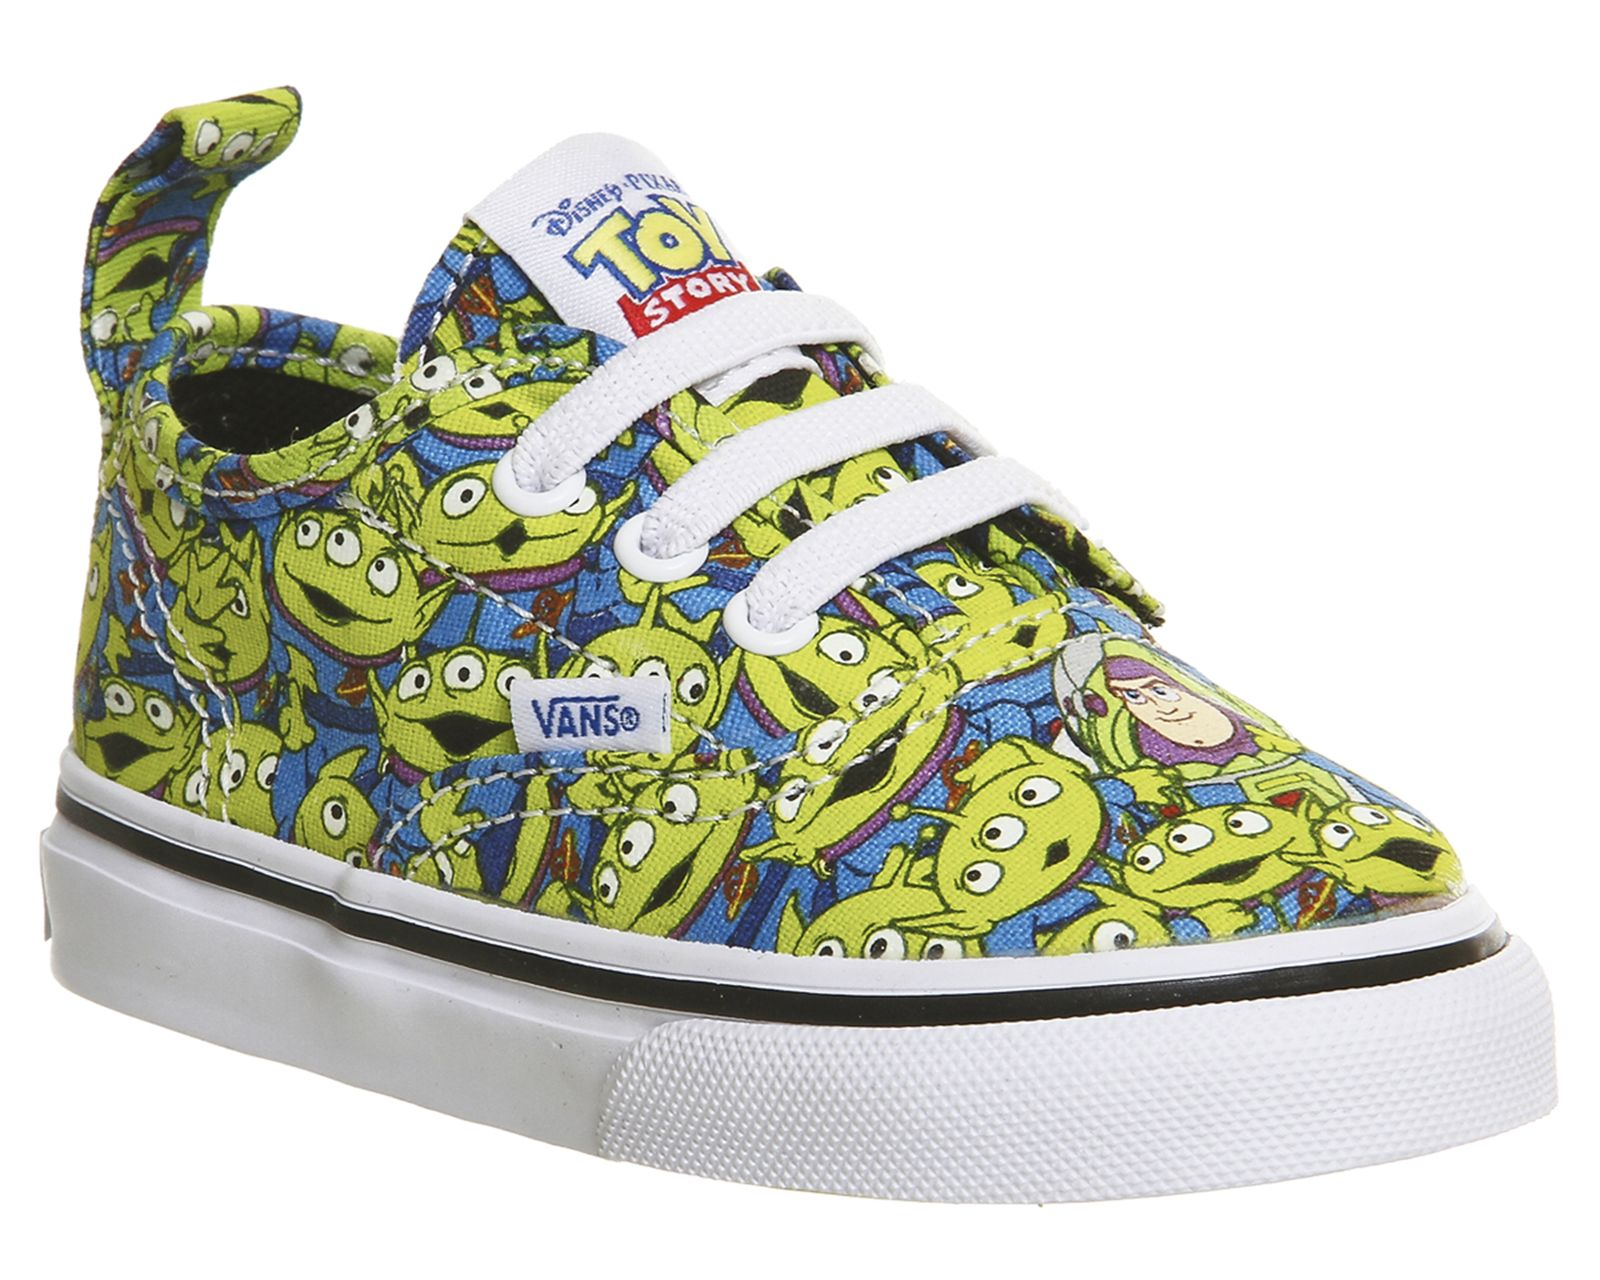 19c6c0227db9fc Vans Authentic Velcro Lace Toddlers Aliens Toy Story